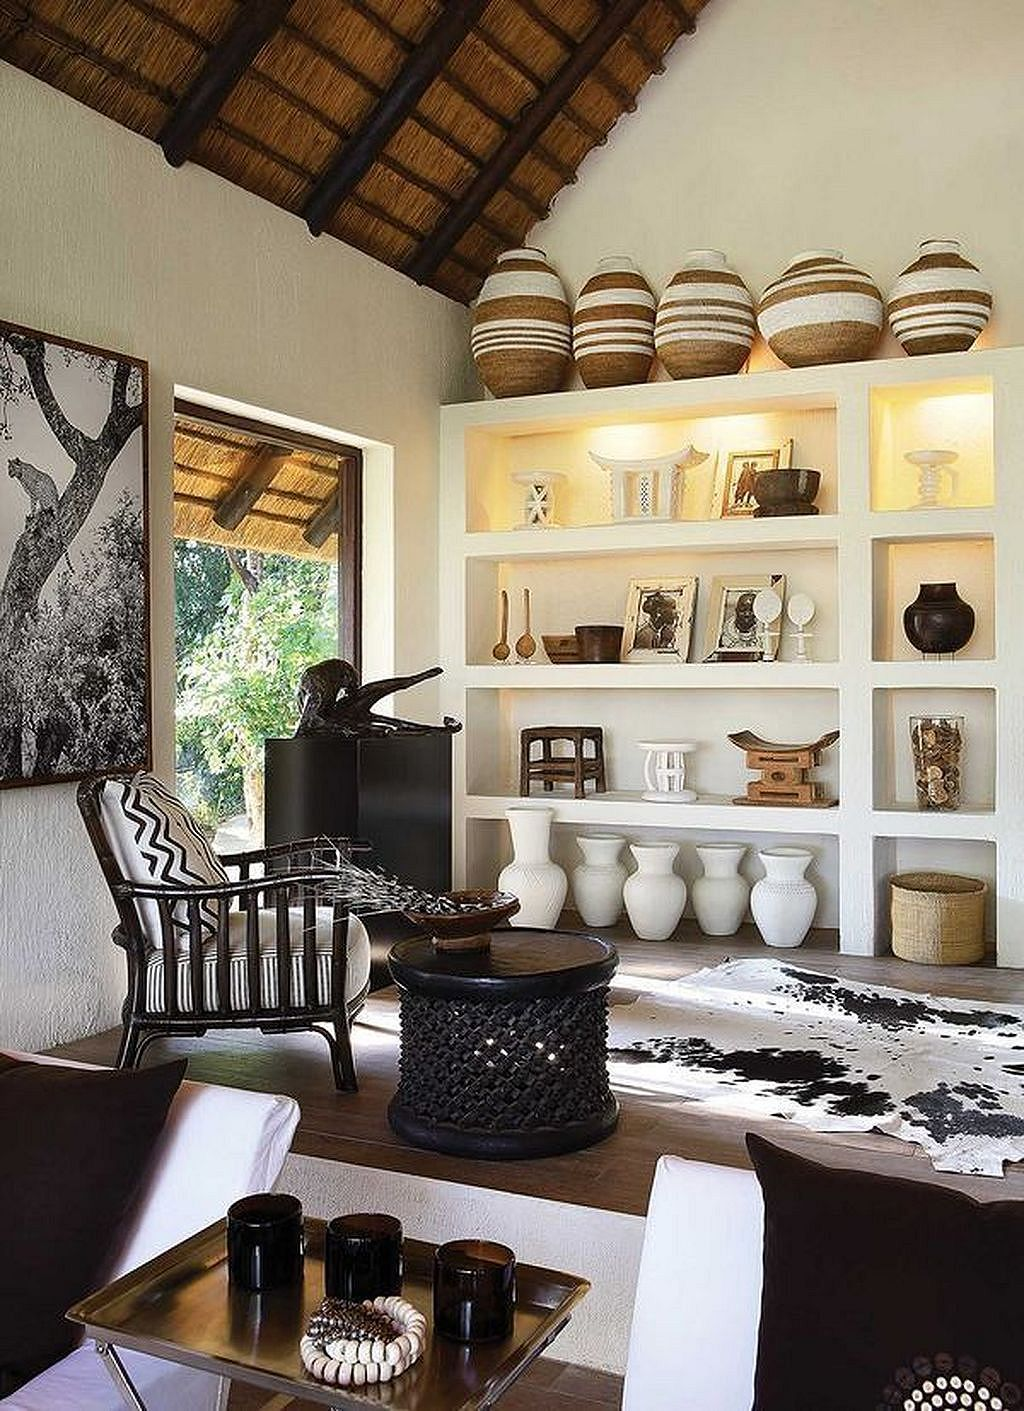 50 Creative Modern Decor With Afrocentric African Style Ideas